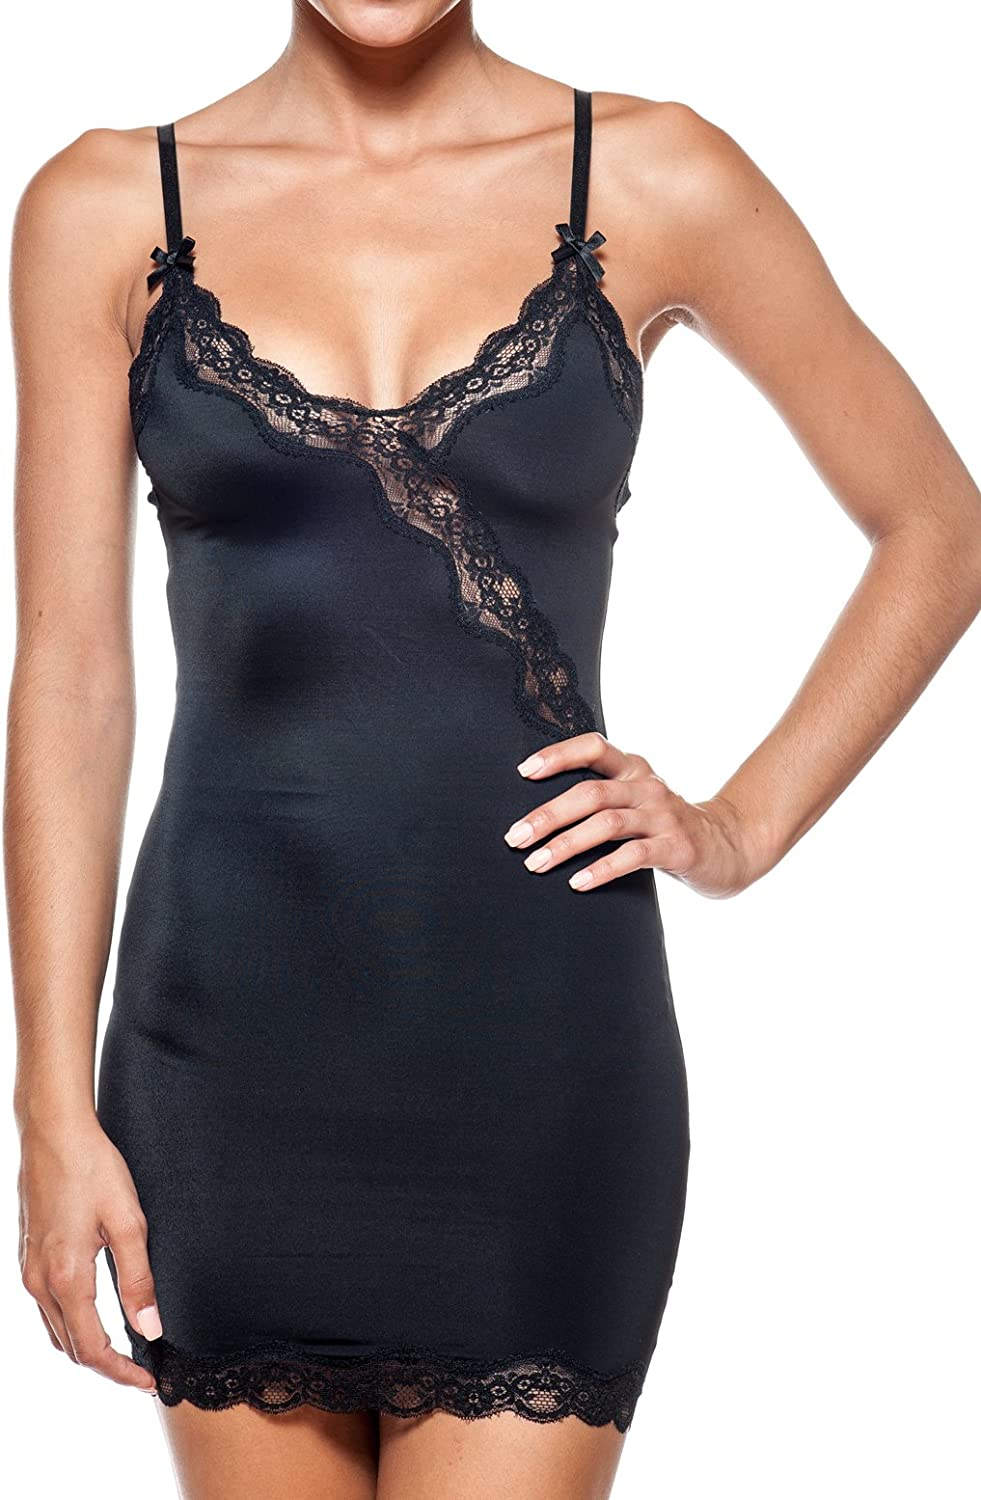 Body Beautiful Women's Shaping Full Body Slip with Lace Insert in Light Weight Soft and Silky Fabric.